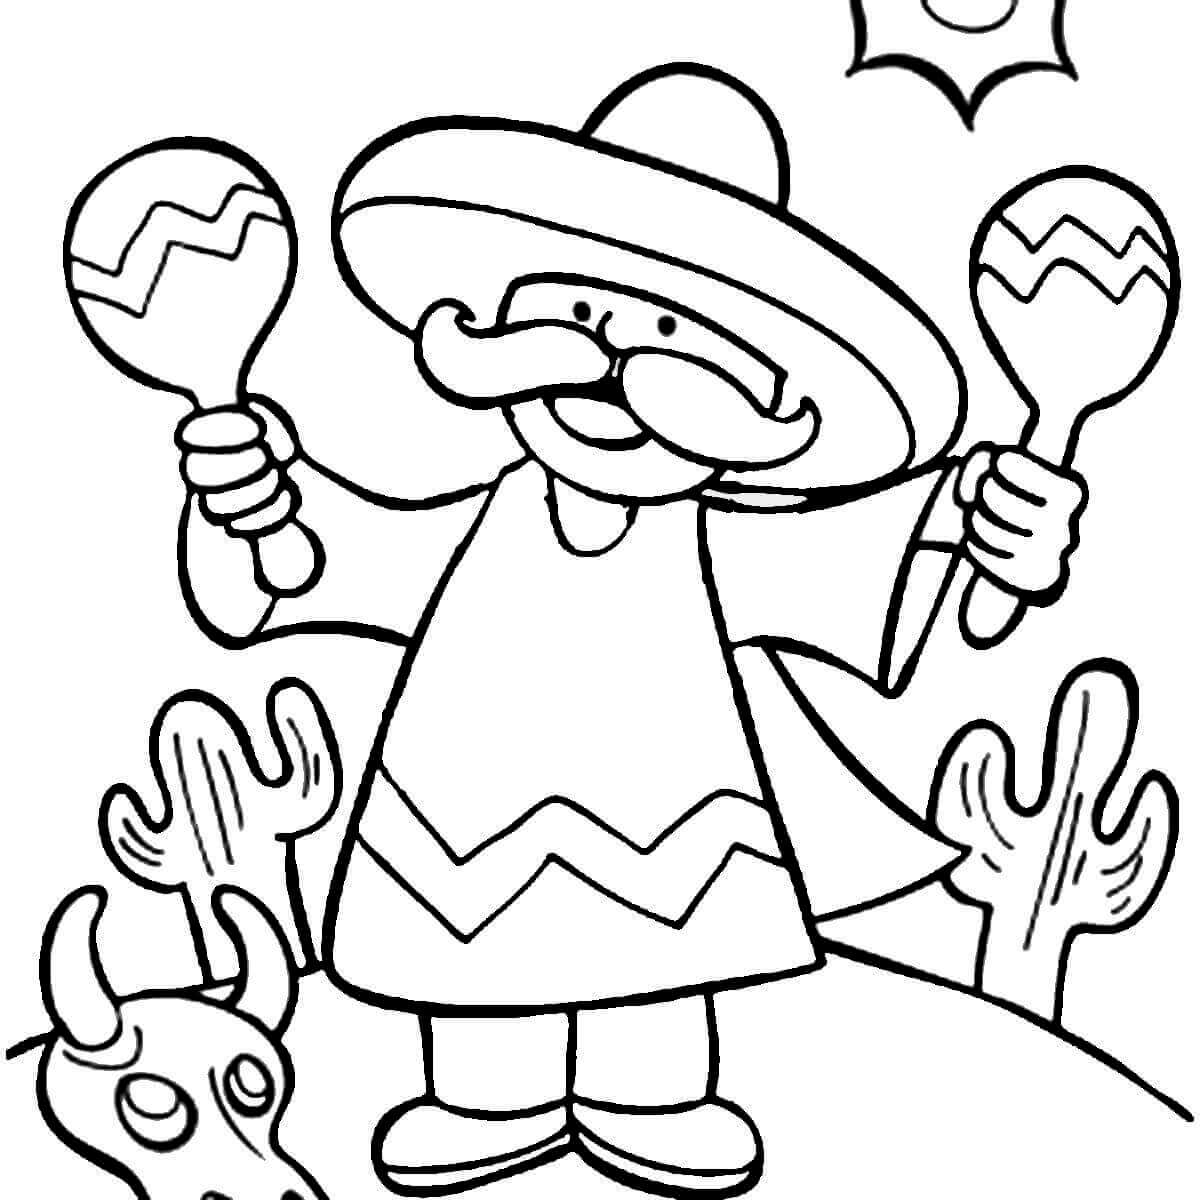 photograph regarding Cinco De Mayo Coloring Pages Printable identify Cinco de mayo coloring webpages